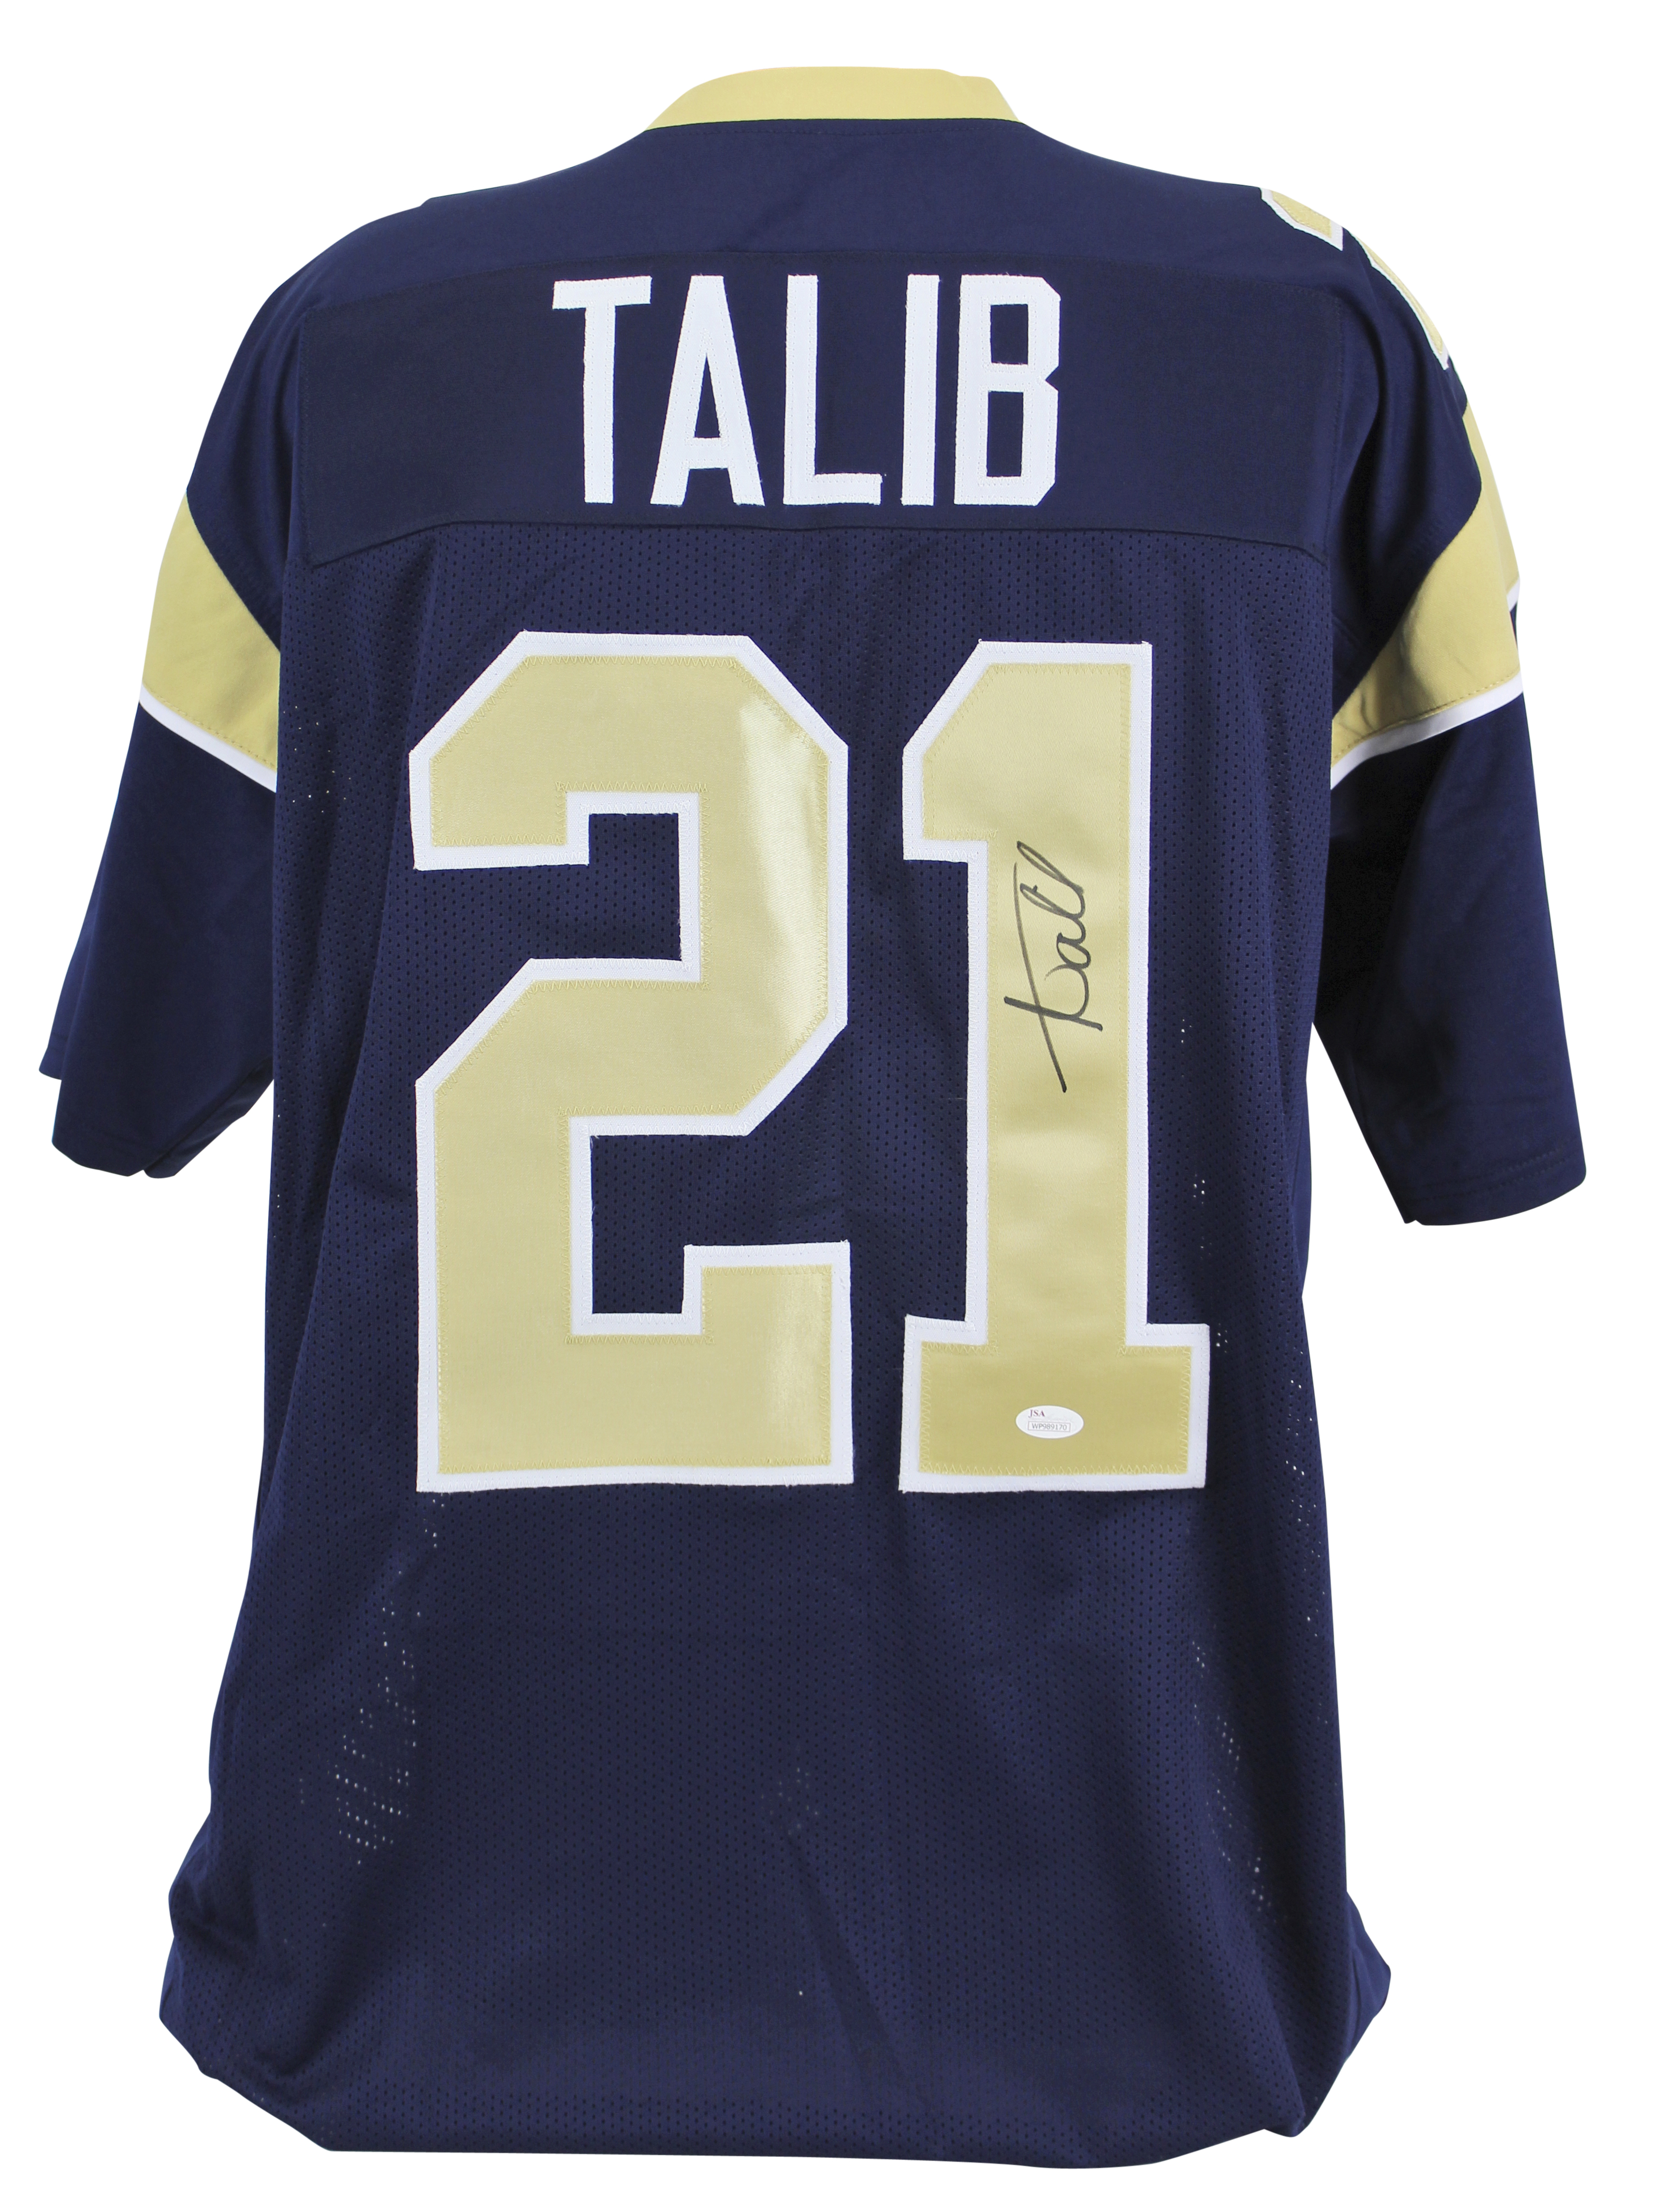 timeless design 8a7f6 1c745 Details about Rams Aqib Talib Authentic Signed Navy Jersey Autographed JSA  Witness